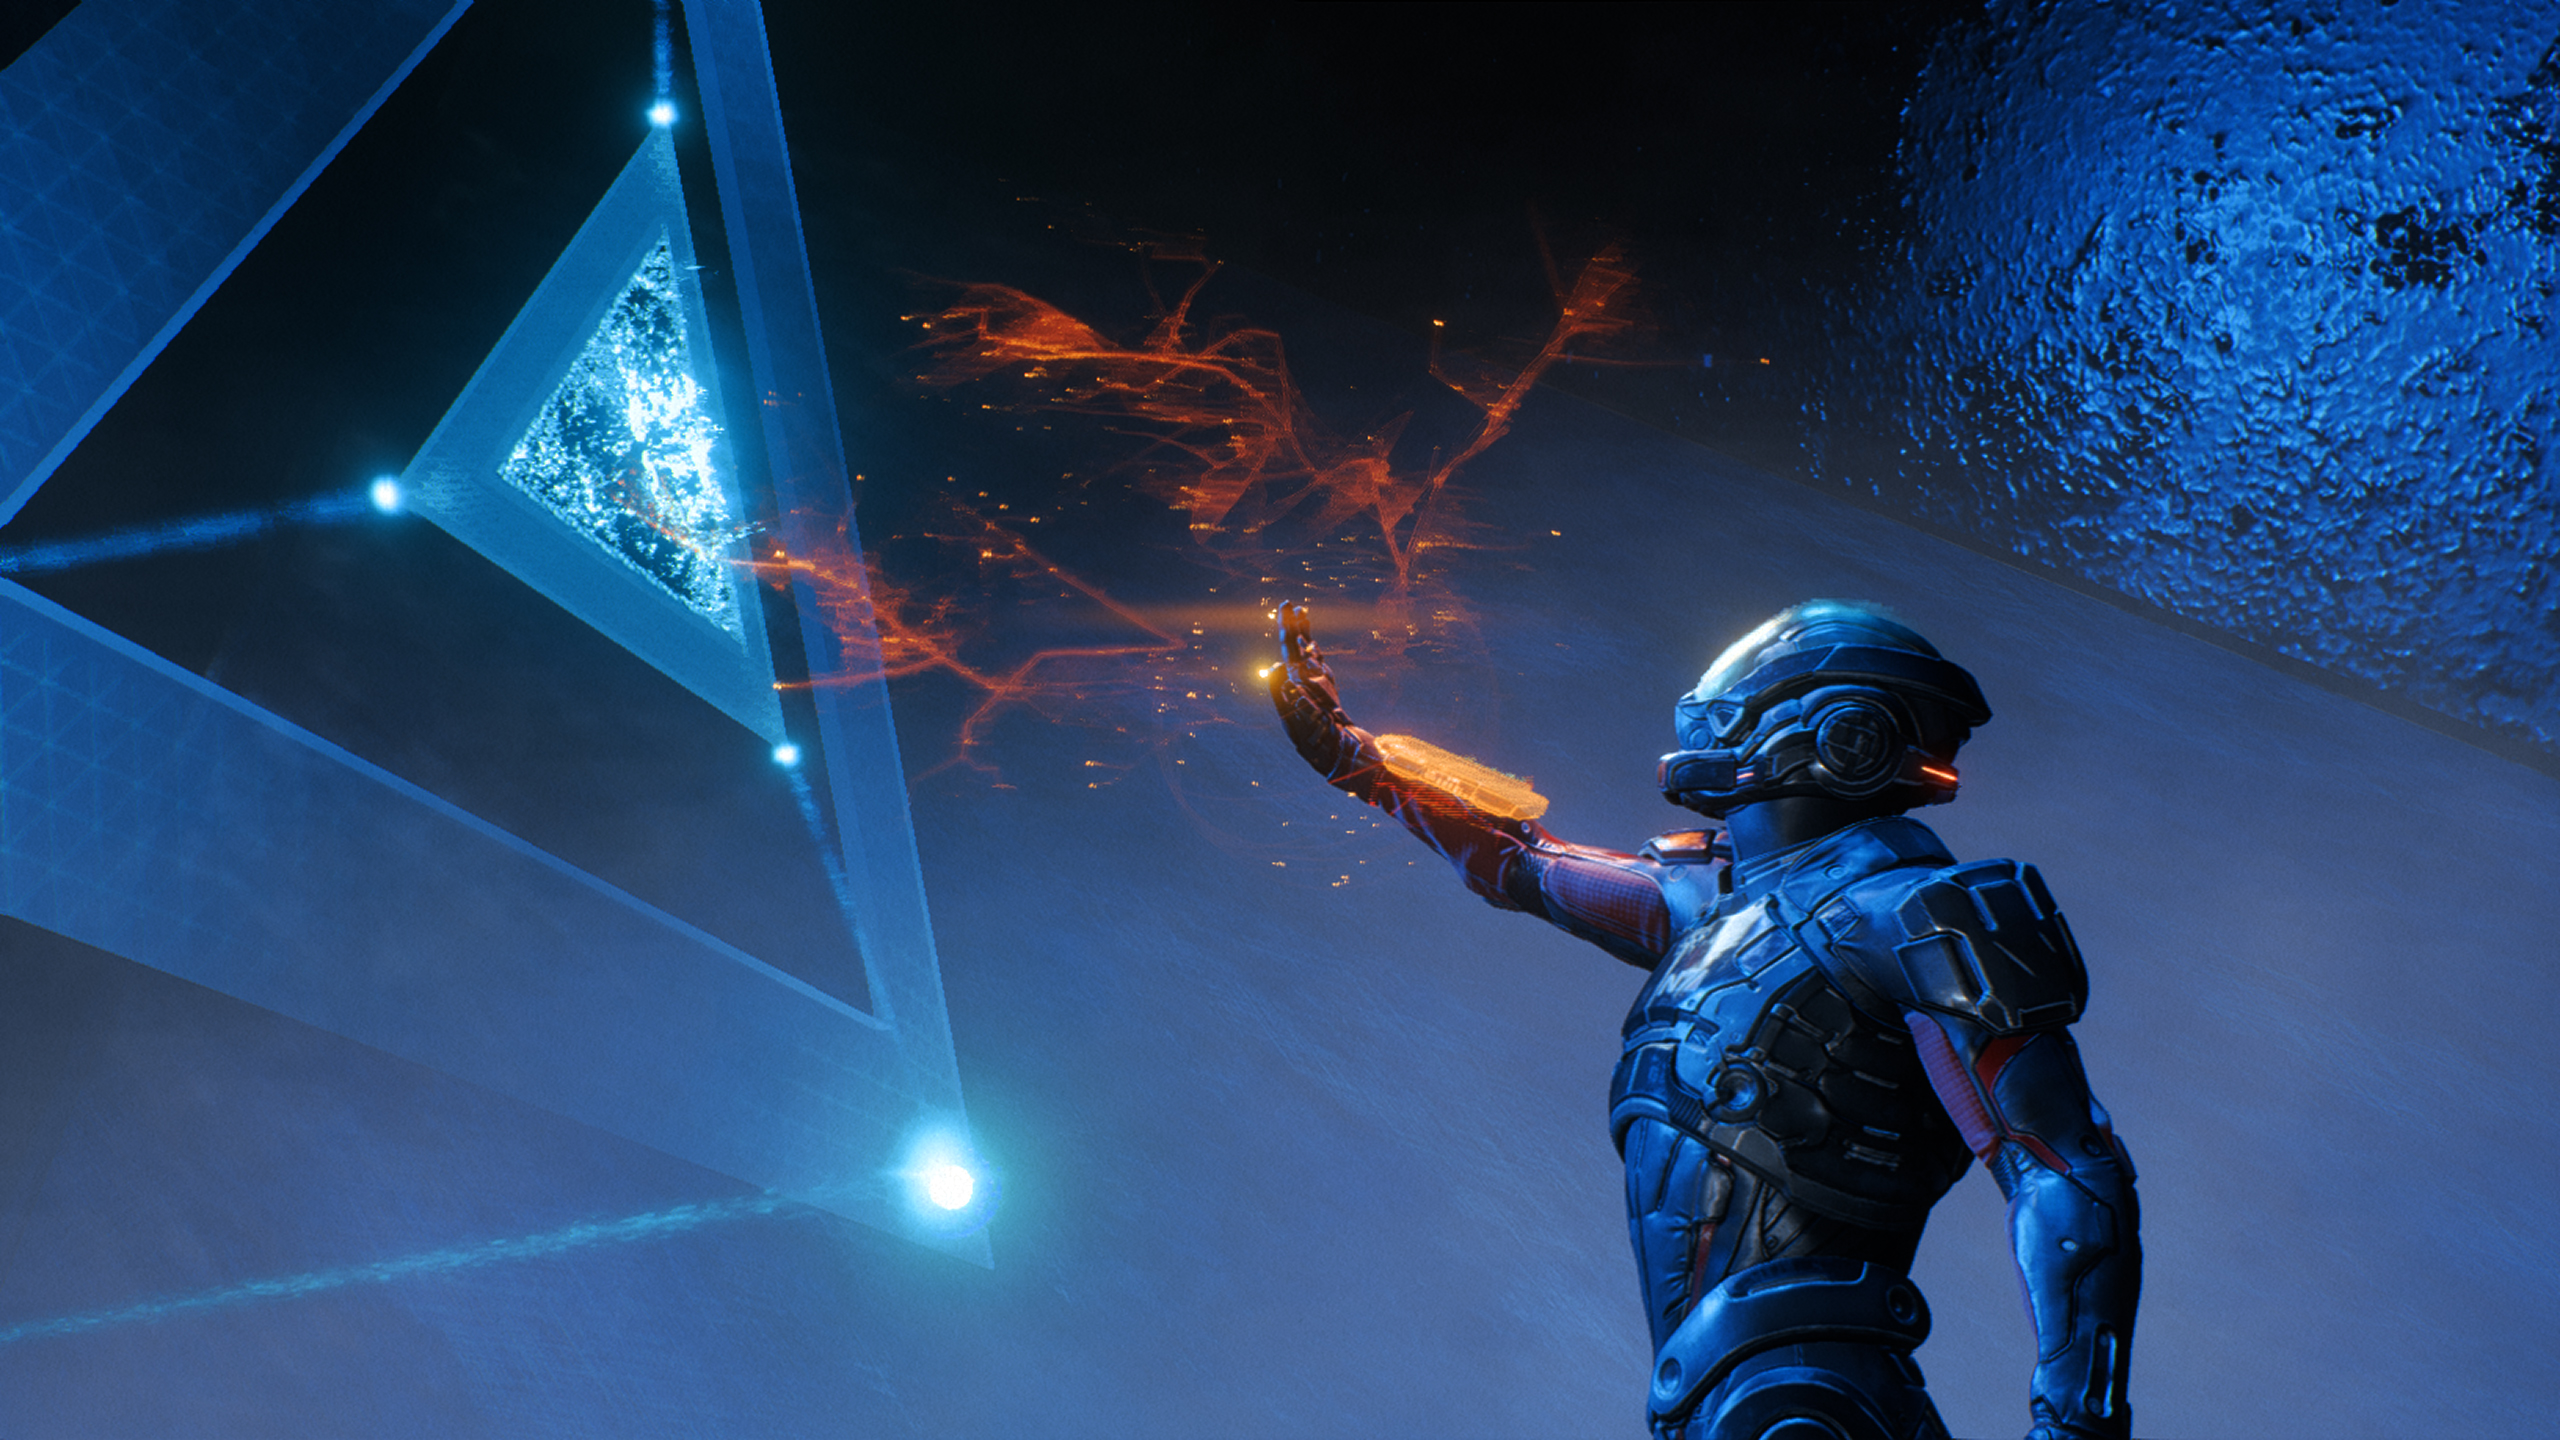 Mass Effect Andromeda Full Hd 3d Wallpapers: Mass Effect Andromeda PC Game 2017, HD Games, 4k